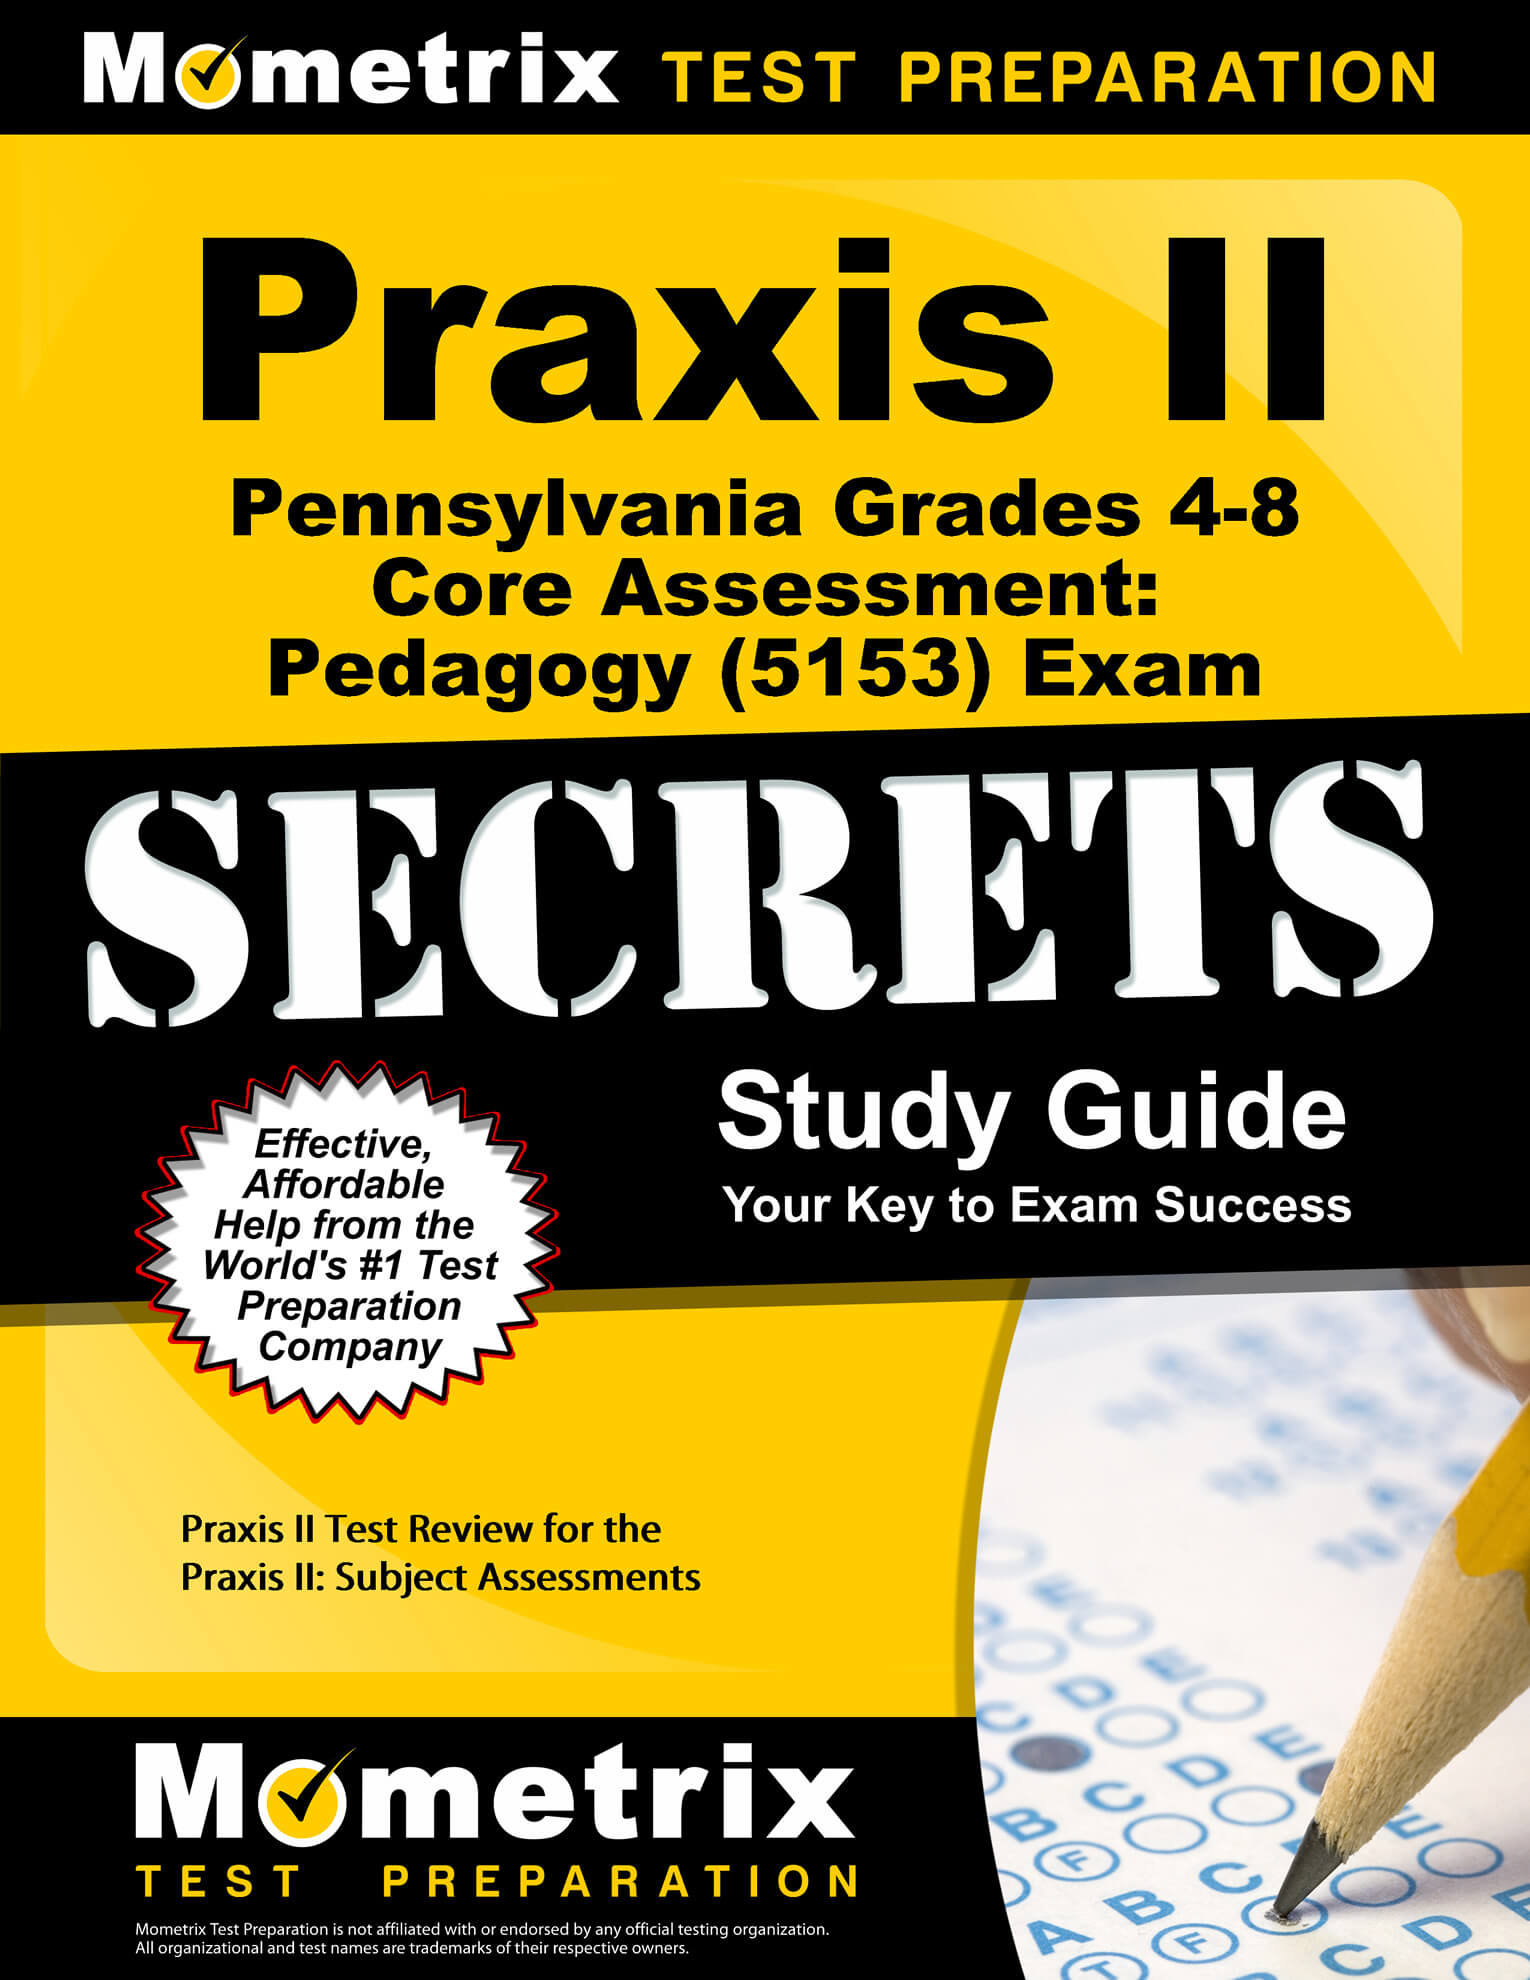 Praxis II Pennsylvania Grades 4-8 Core Assessment: Pedagogy Study Guide